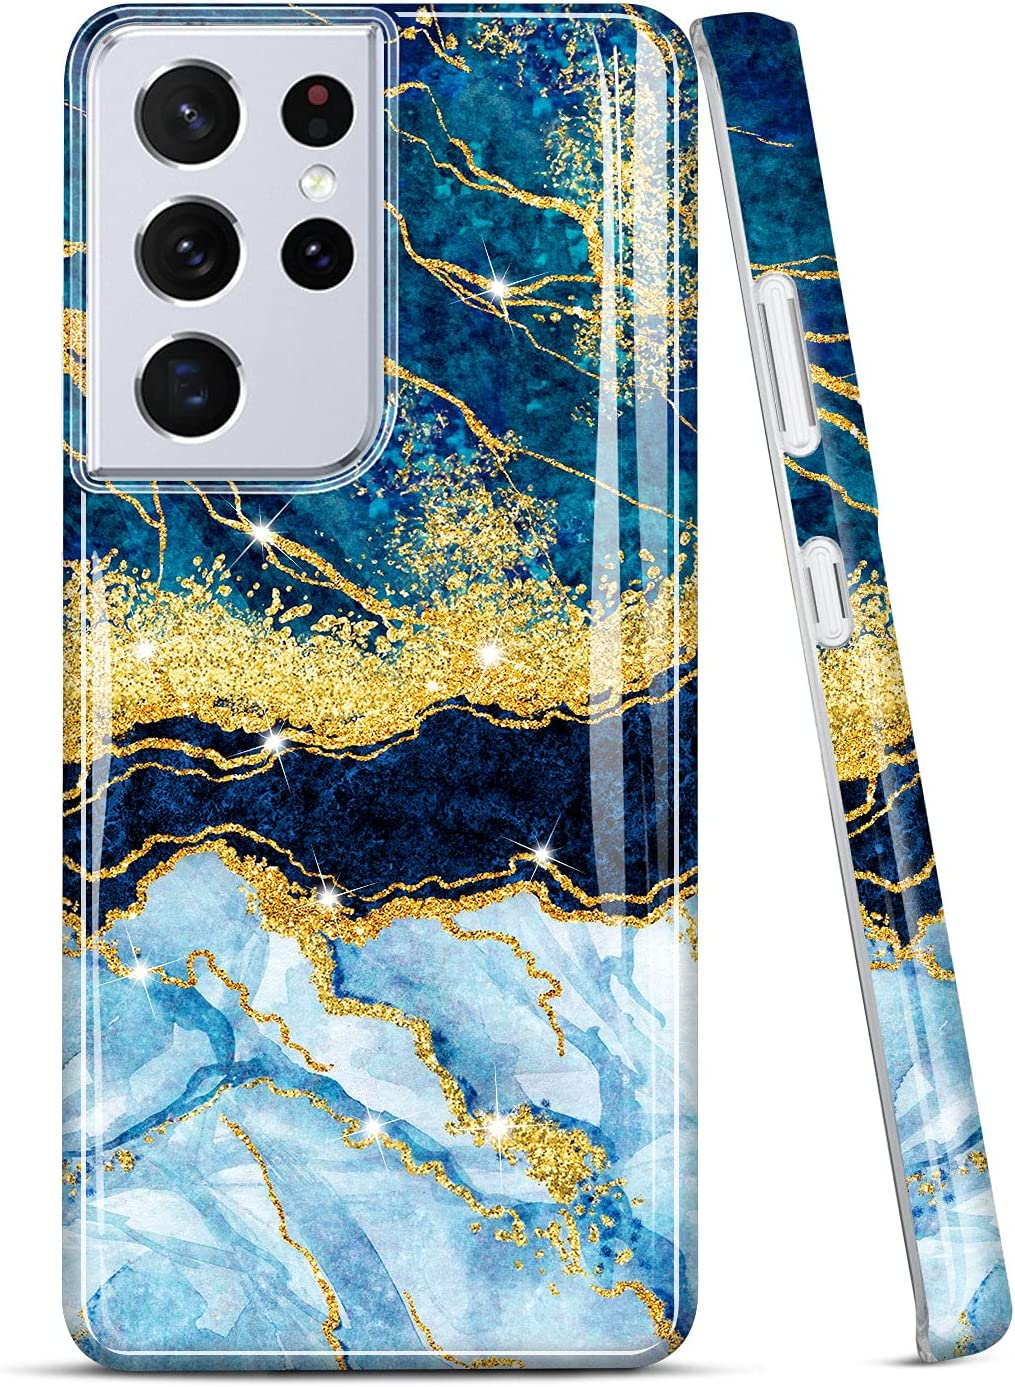 JIAXIUFEN Galaxy S21 Ultra Case Gold Sparkle Glitter Marble Slim Shockproof TPU Soft Rubber Silicone Cover Phone Case for Samsung Galaxy S21 Ultra 5G 6.8 inch 2021 Dark Blue